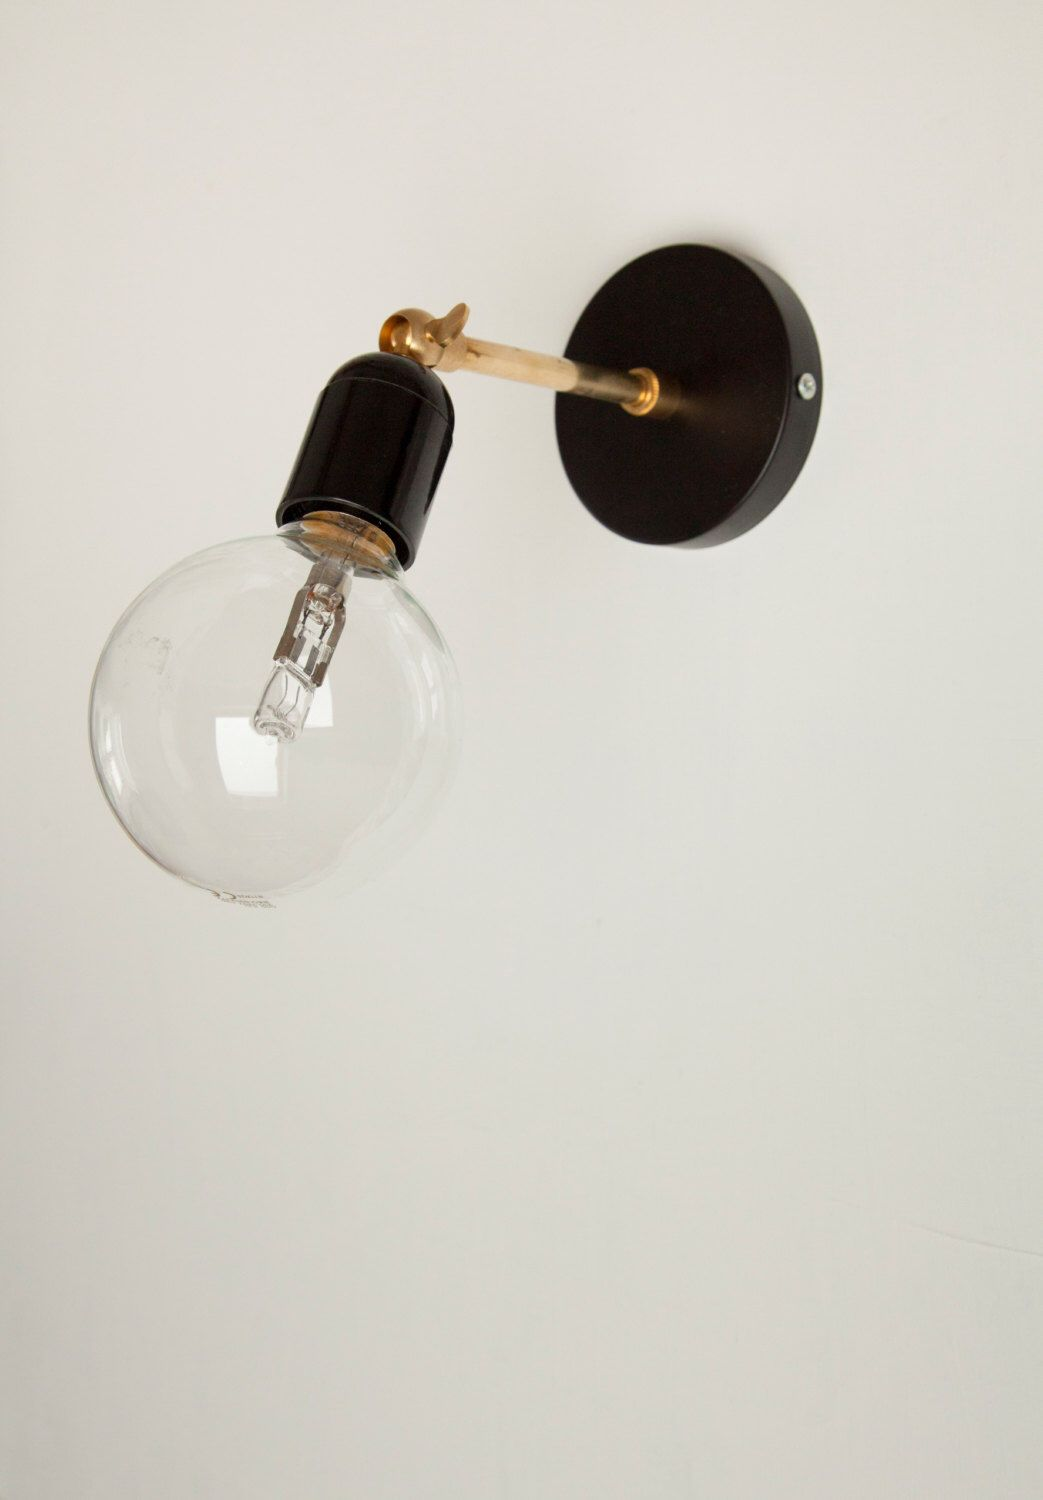 Brass Wall sconce light with black Bakelite lamp holder and brass